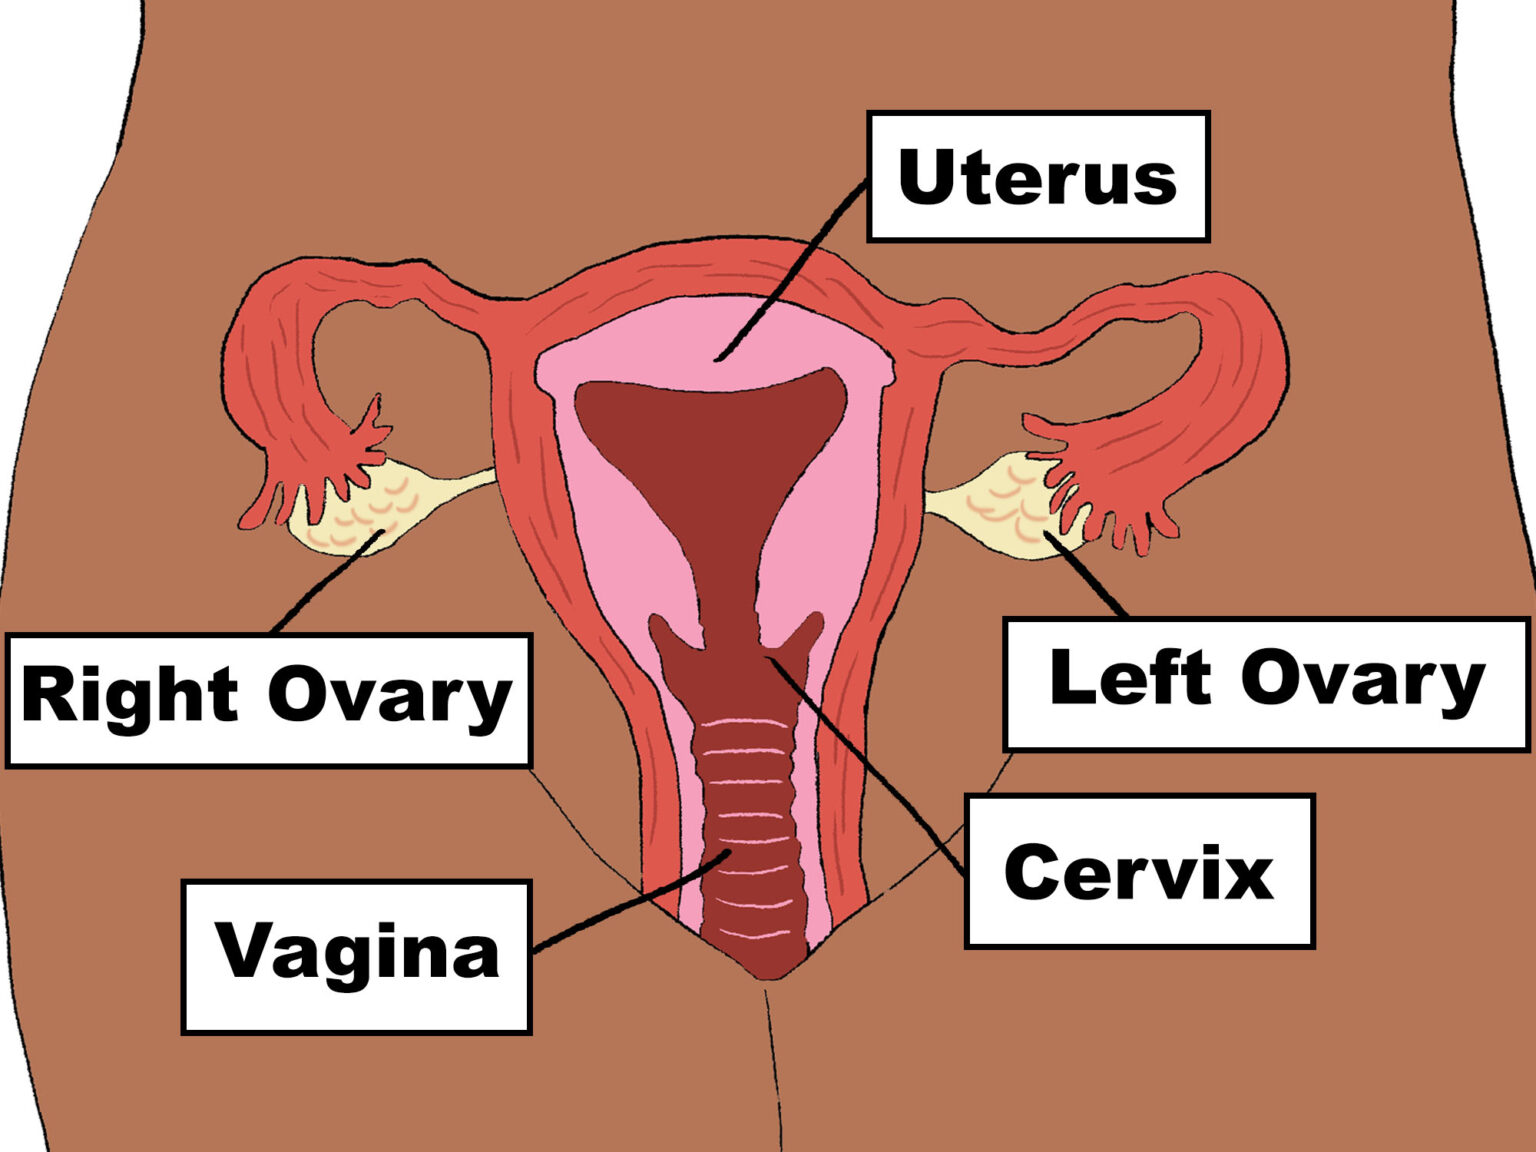 A digital illustration of the inner anatomy. The inner anatomy starts at the vaginal entrance, which is the lowest point of the vulva. The vaginal entrance continues in the body as the vagina, before reaching an end point called the cervix. The vaginal entrance continues inside of the body upwards and diagonally towards the back or the buttocks. The cervix acts as a barrier between the vagina and the uterus, in the case of bath water or tampons, for example. The cervix allows sperm carrying spermatozoids to enter the uterus. Beyond the cervix is the Uterus, which is a hollow muscle that plays an important role during pregnancy, which is to carry the infant inside the body until birth. On each side of the uterus are the right and left ovaries.